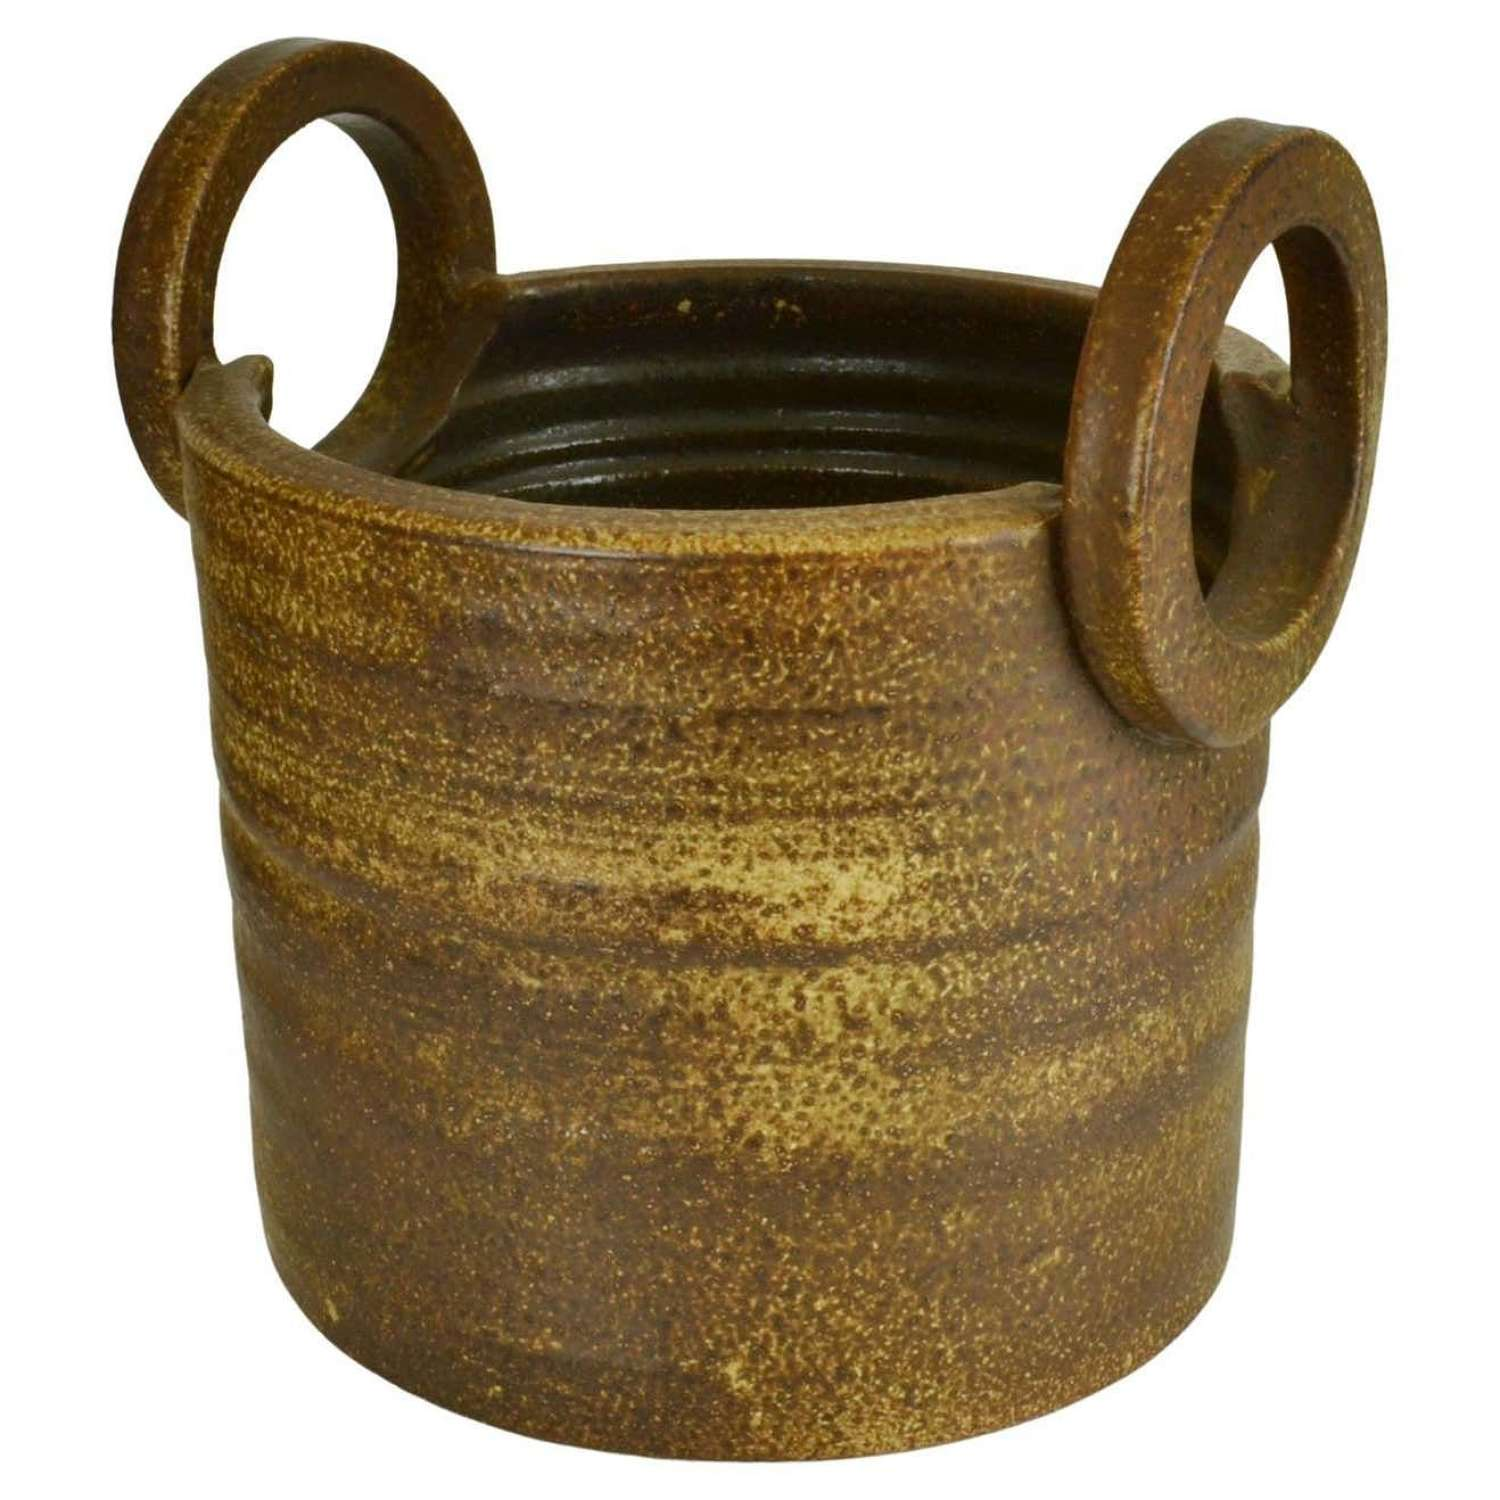 Two Handled Large Studio Ceramic Plant Pot by Mobach